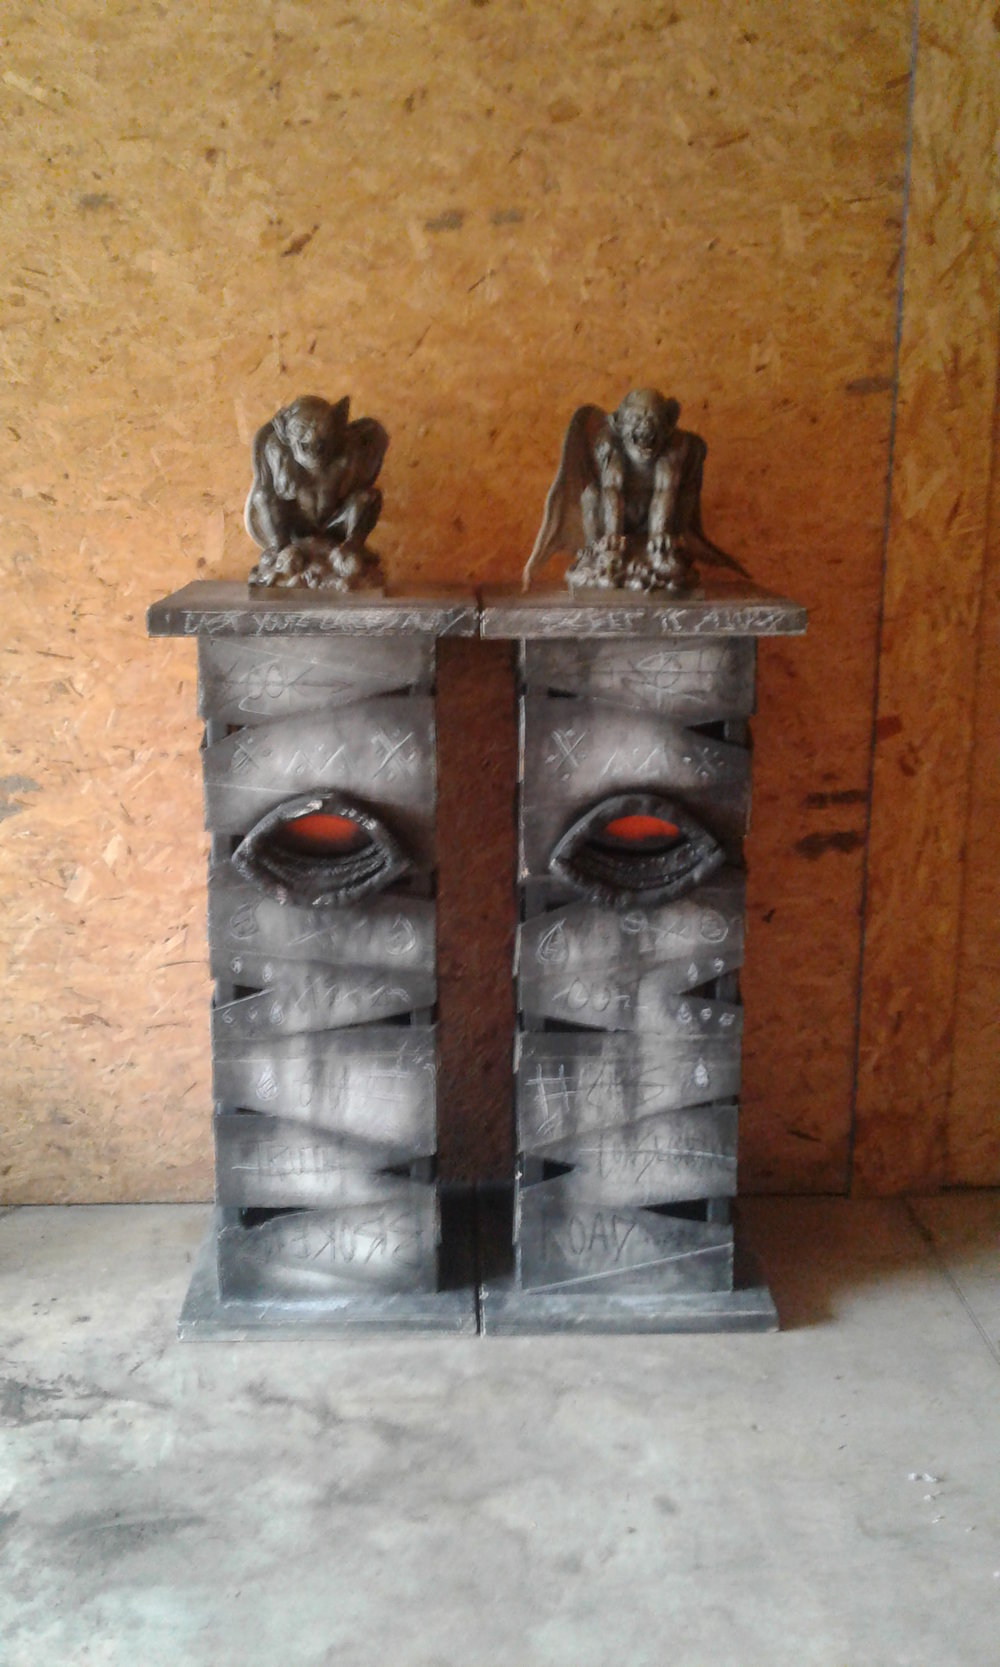 Graveyard set entry columns.  Hand fabricated and painted.  Both feature inner lighting and illuminated eyes.